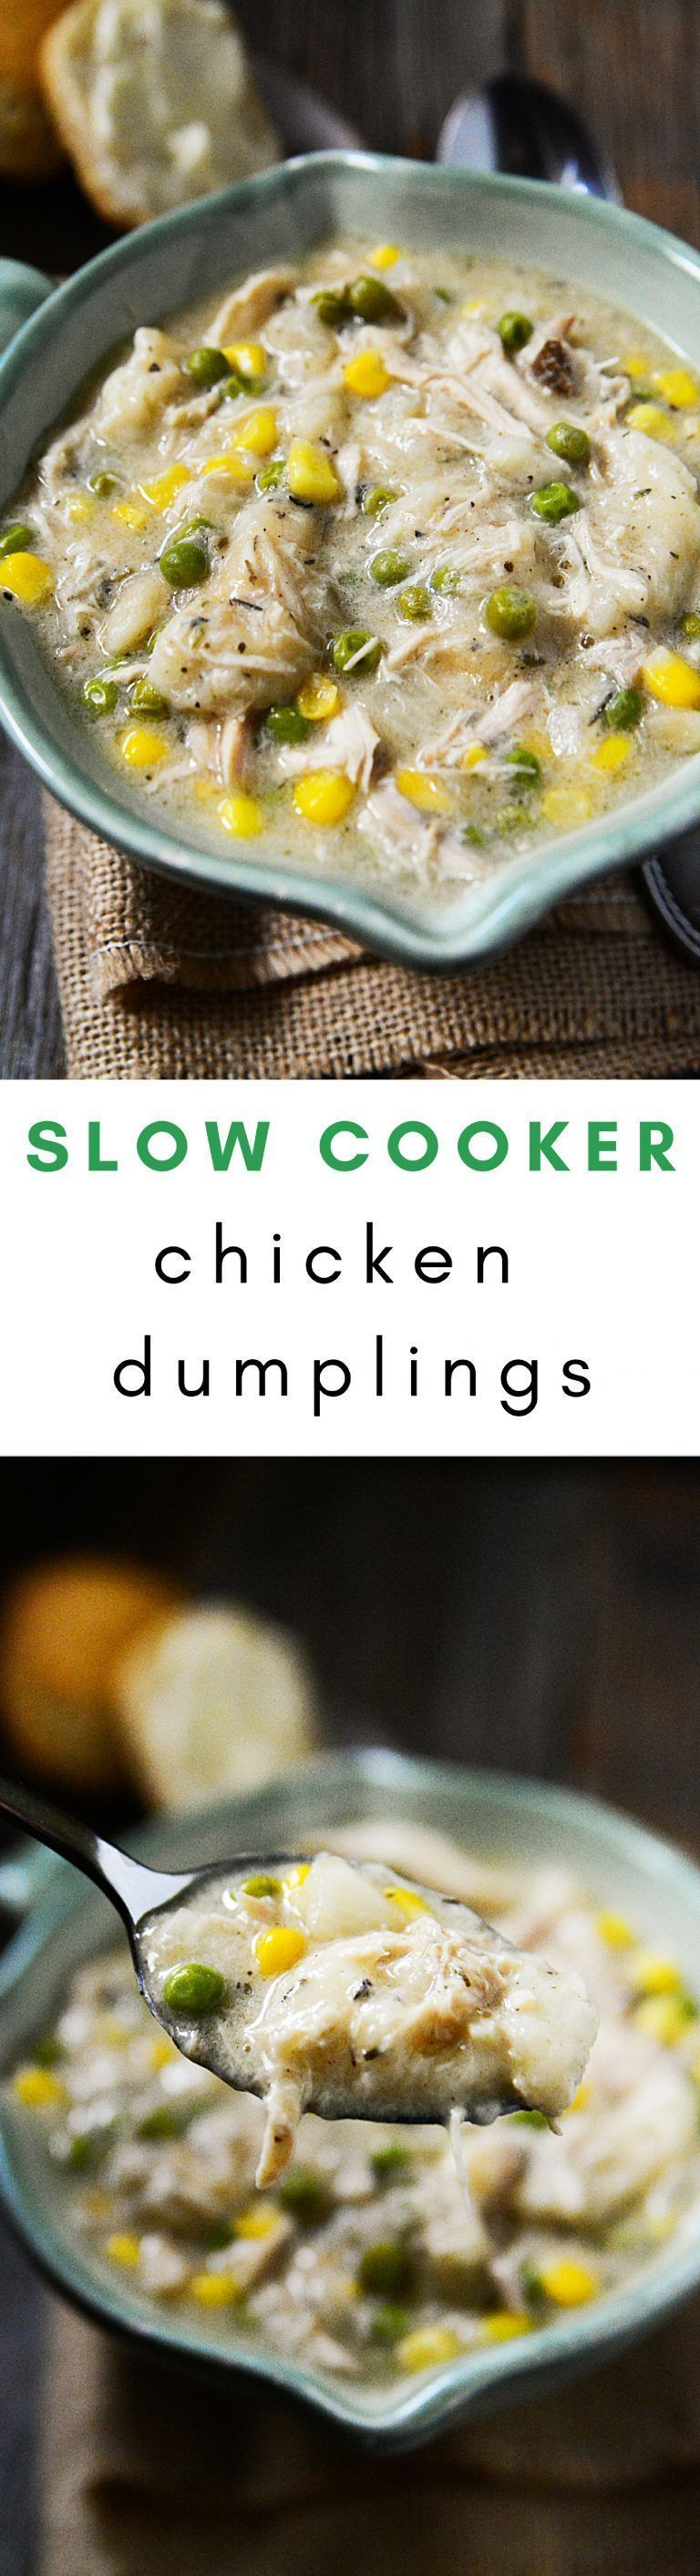 A warm, comforting recipe for Chicken & Dumplings that you can make low and slow in your Crock-Pot slow cooker. A meal full of tender chicken, peas, corn, and dumplings! #chickenenchiladas #chickendumplingscrockpot A warm, comforting recipe for Chicken & Dumplings that you can make low and slow in your Crock-Pot slow cooker. A meal full of tender chicken, peas, corn, and dumplings! #chickenenchiladas #chickendumplingscrockpot A warm, comforting recipe for Chicken & Dumplings that you can make lo #chickendumplingscrockpot